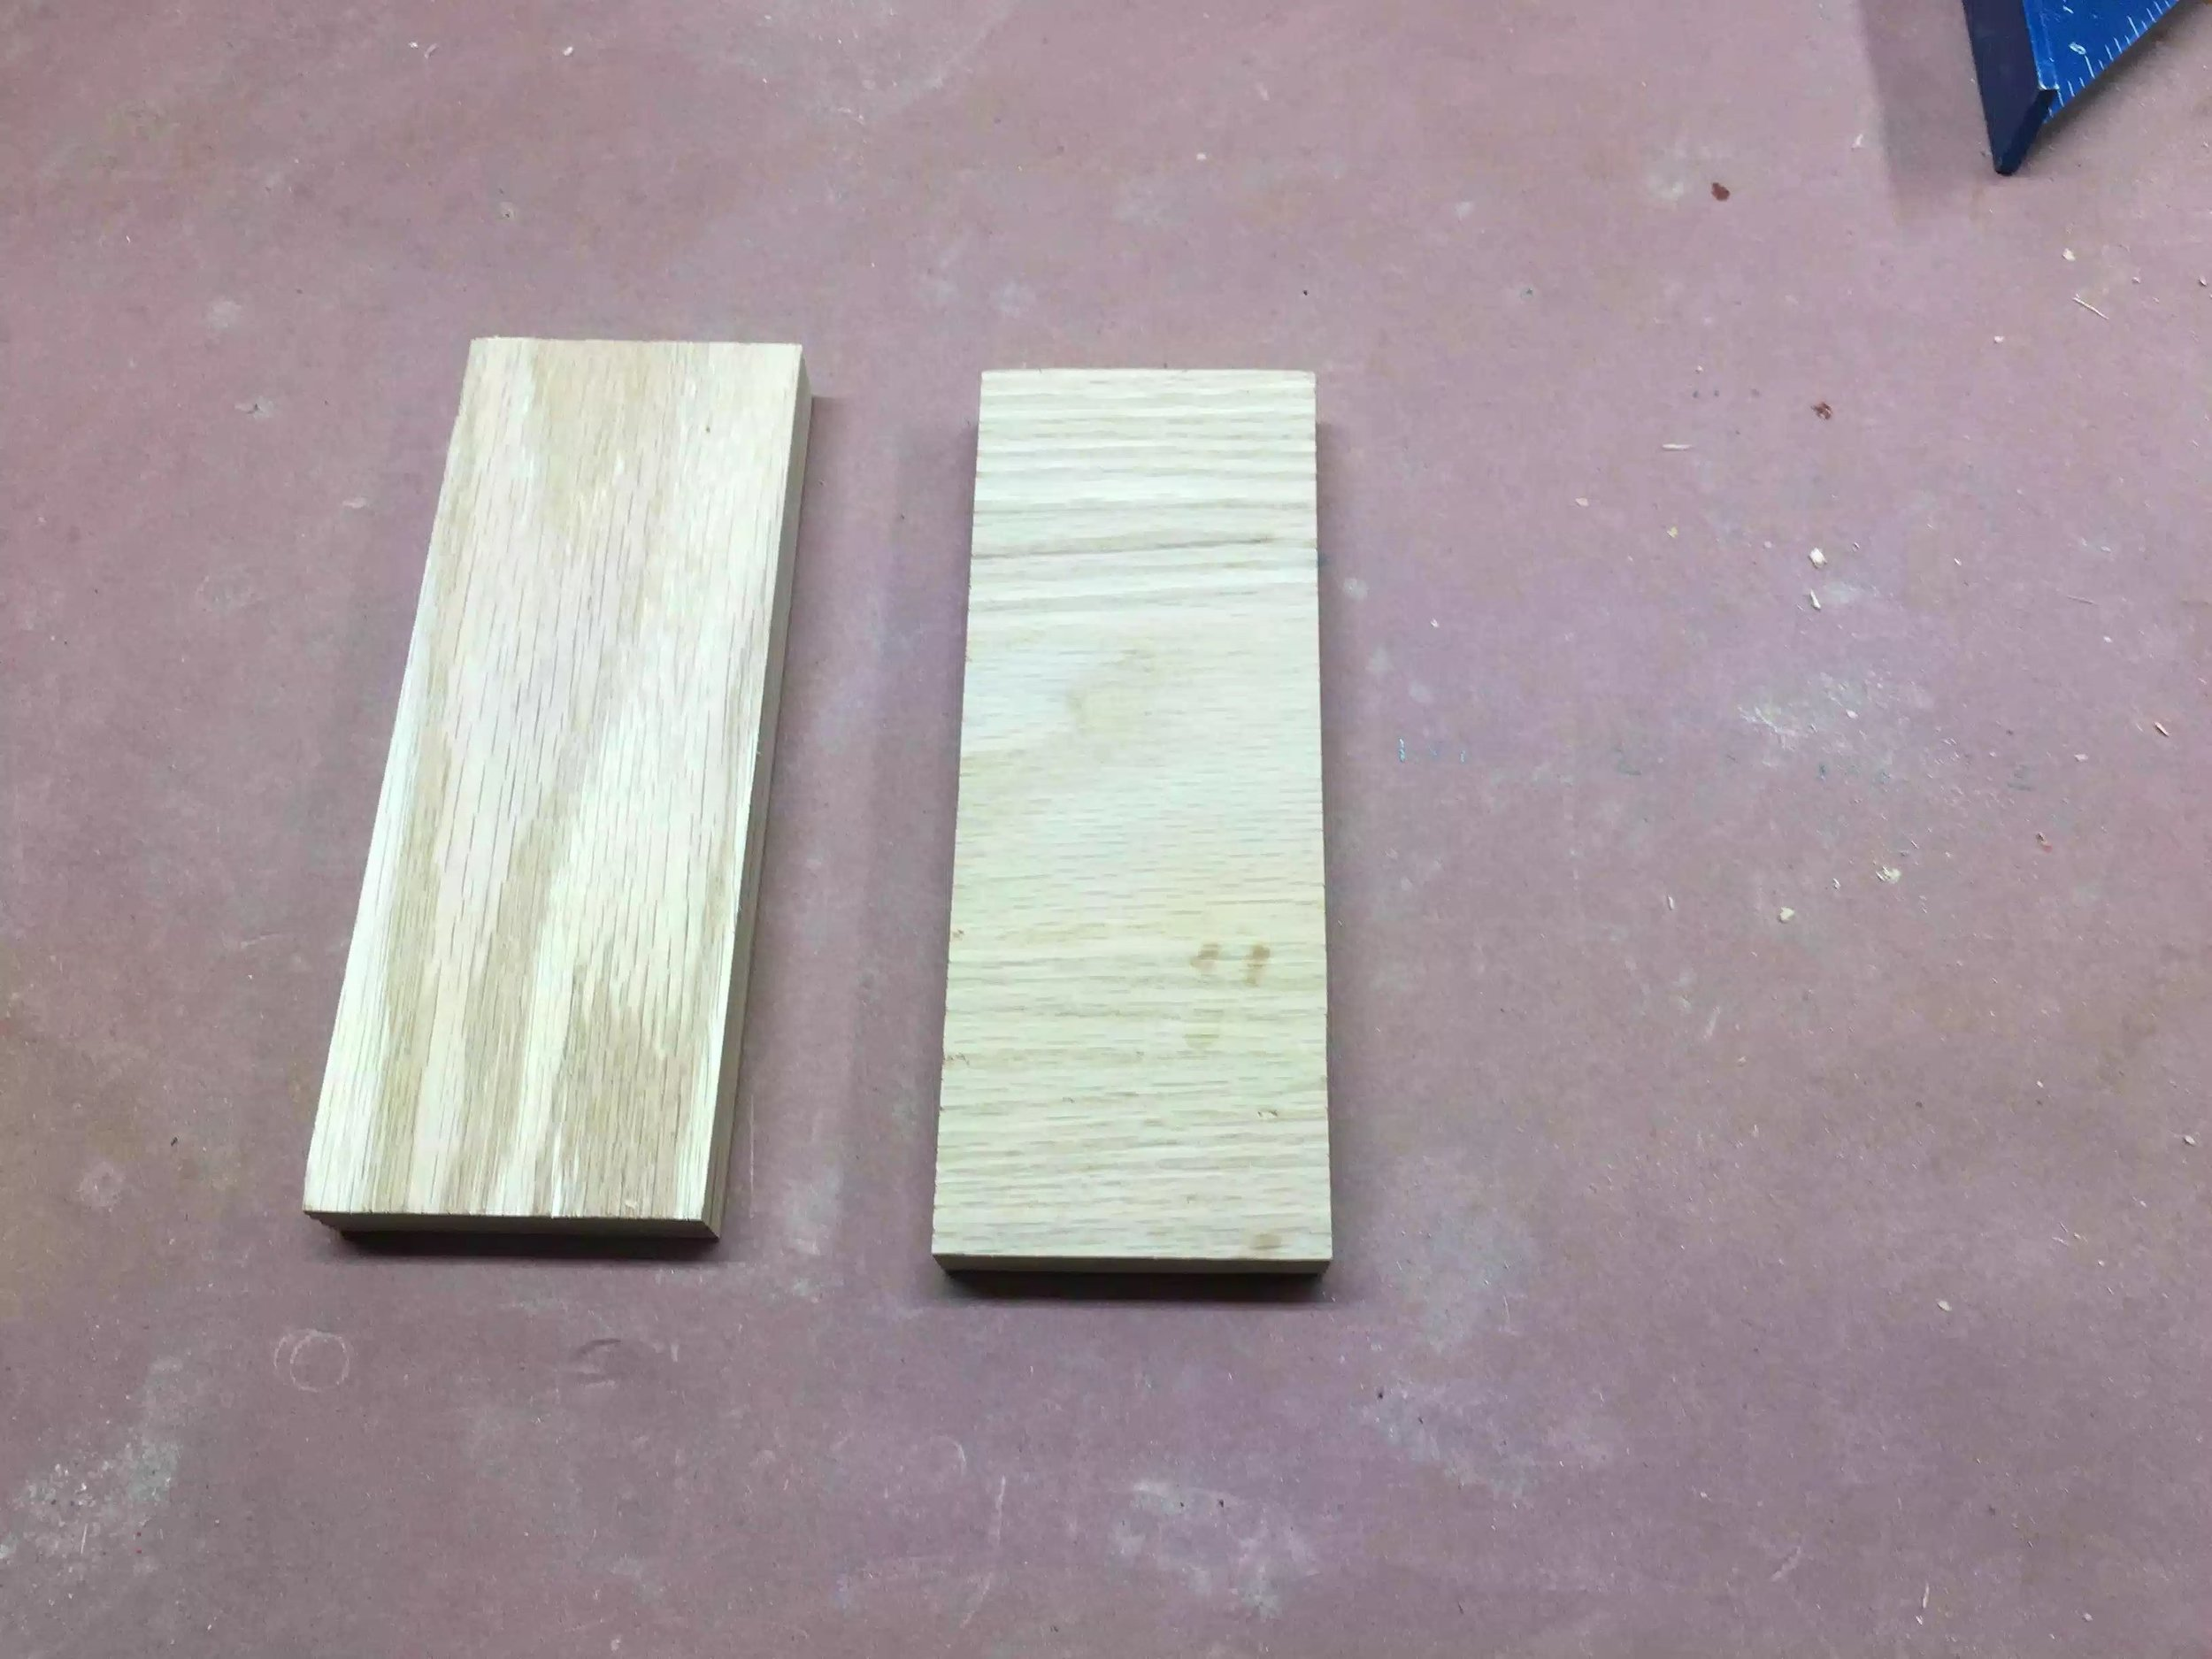 Here are the 2 pieces of oak that I used for the base of the strop.